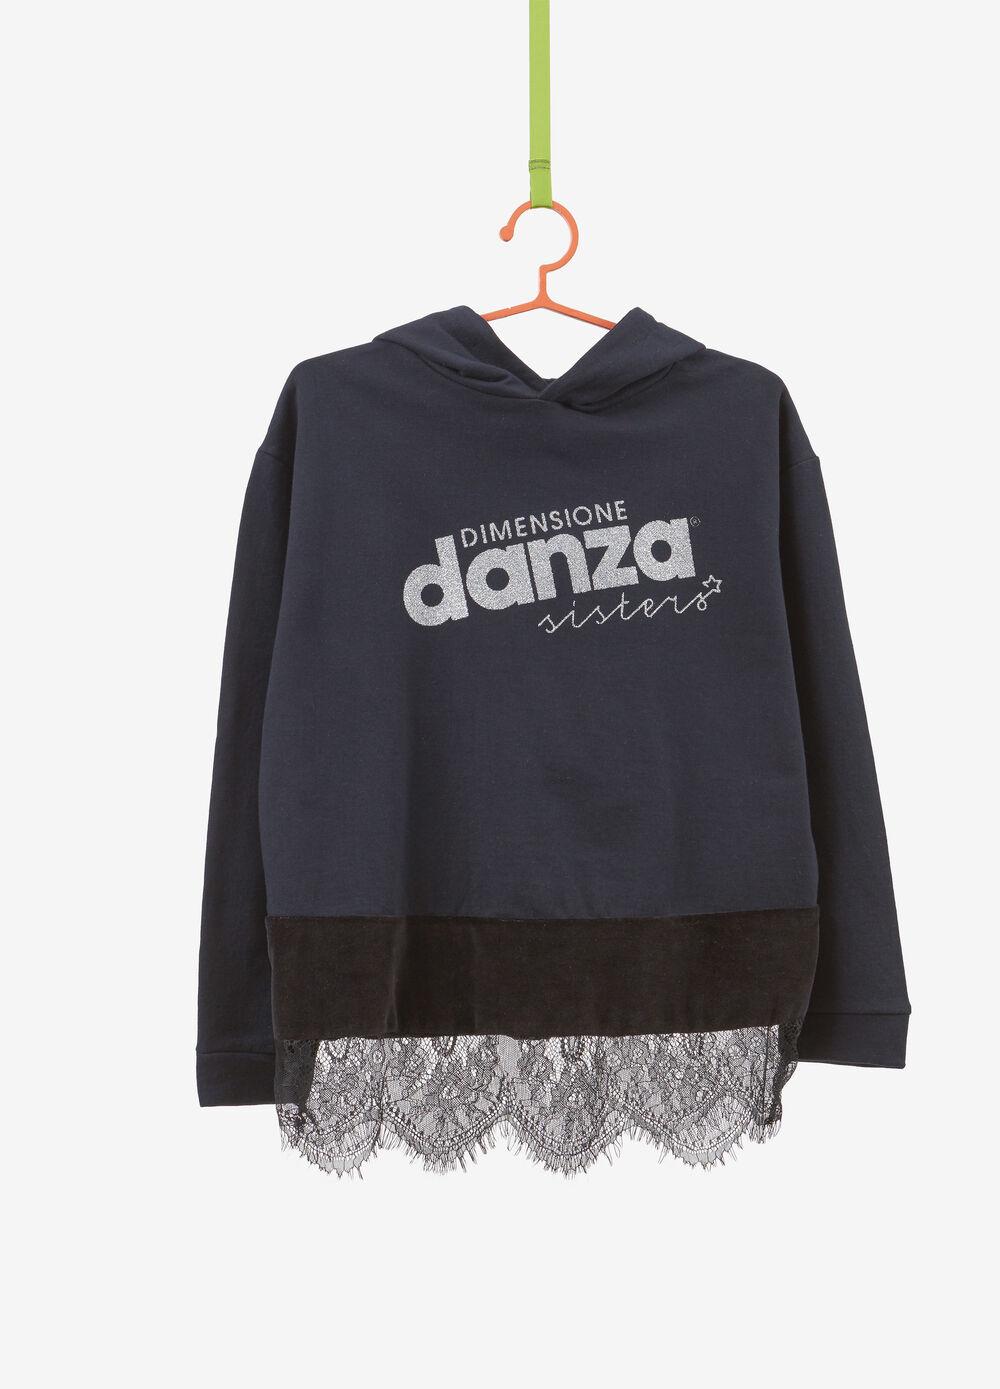 Dimensione Danza cotton blend sweatshirt with lace